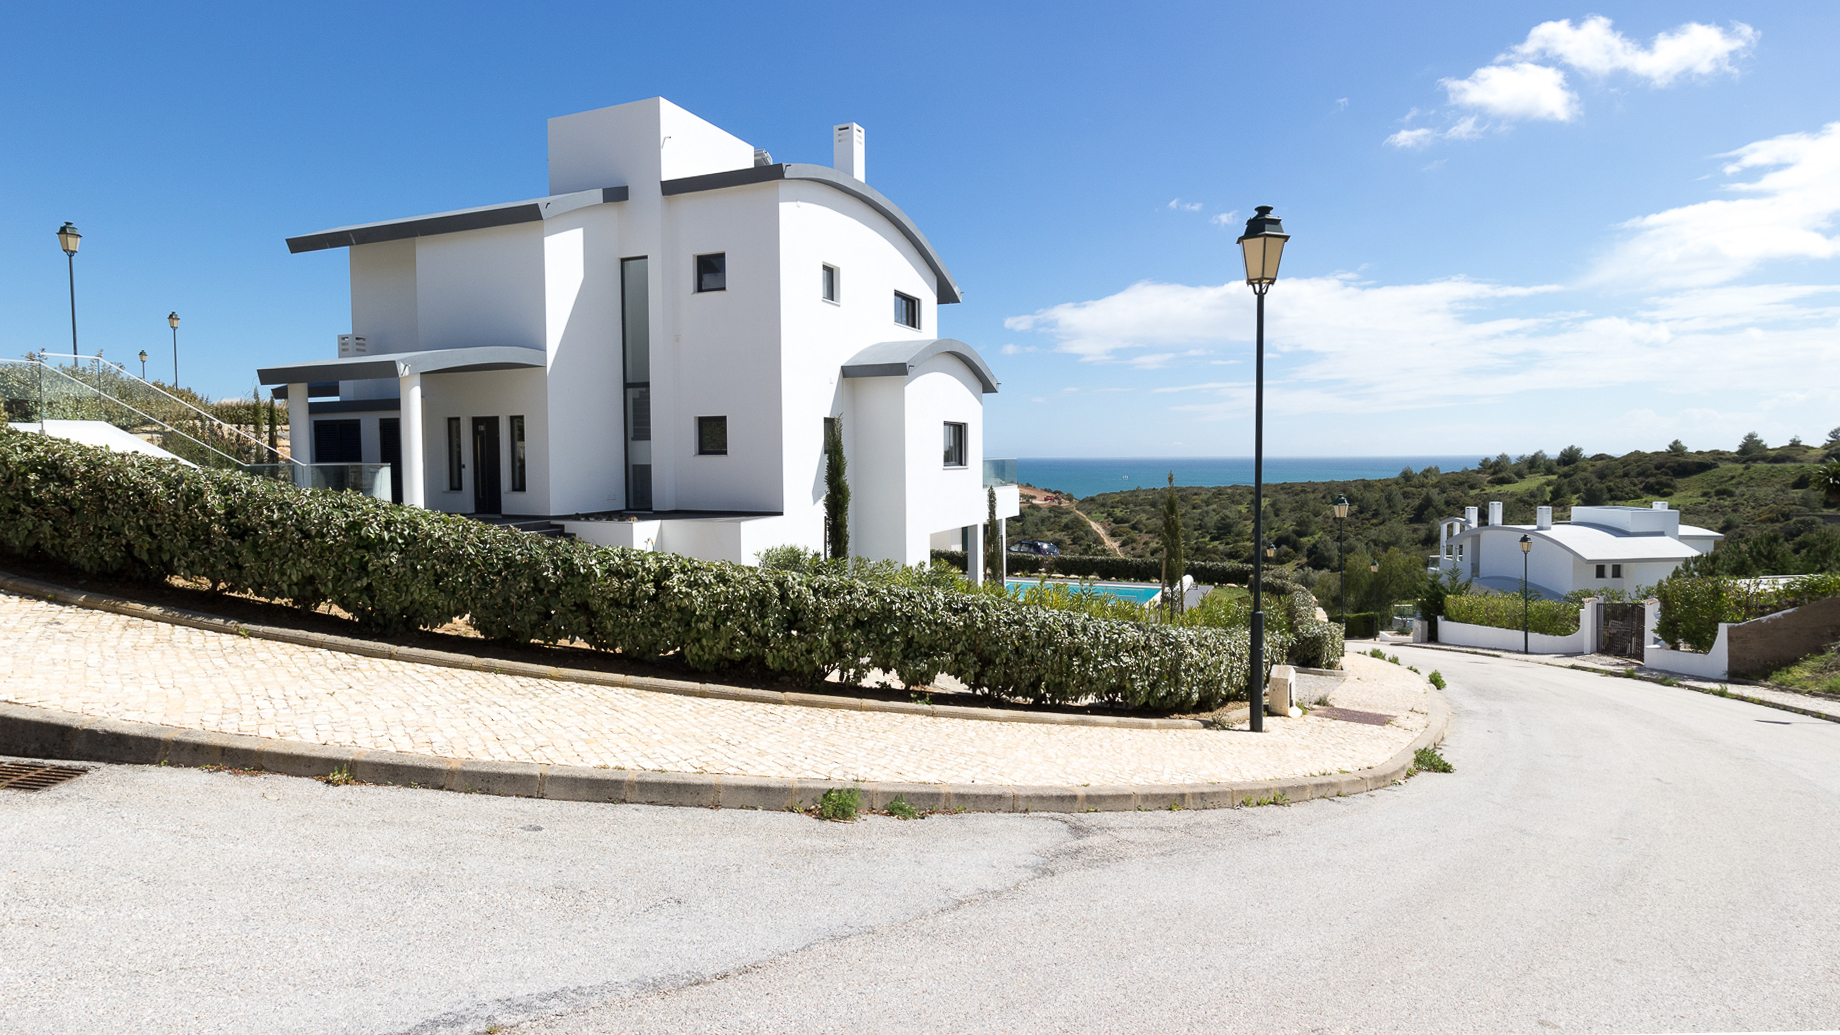 4 bedroom contemporary villa with pool and sea views, close to Burgau, West Algarve | LG1067 This contemporary property is located at Quinta da Fortaleza between Burgau and Salema. A beautiful idyllic place within walking distance of Cabanas Velhas beach with its own restaurant/bar.